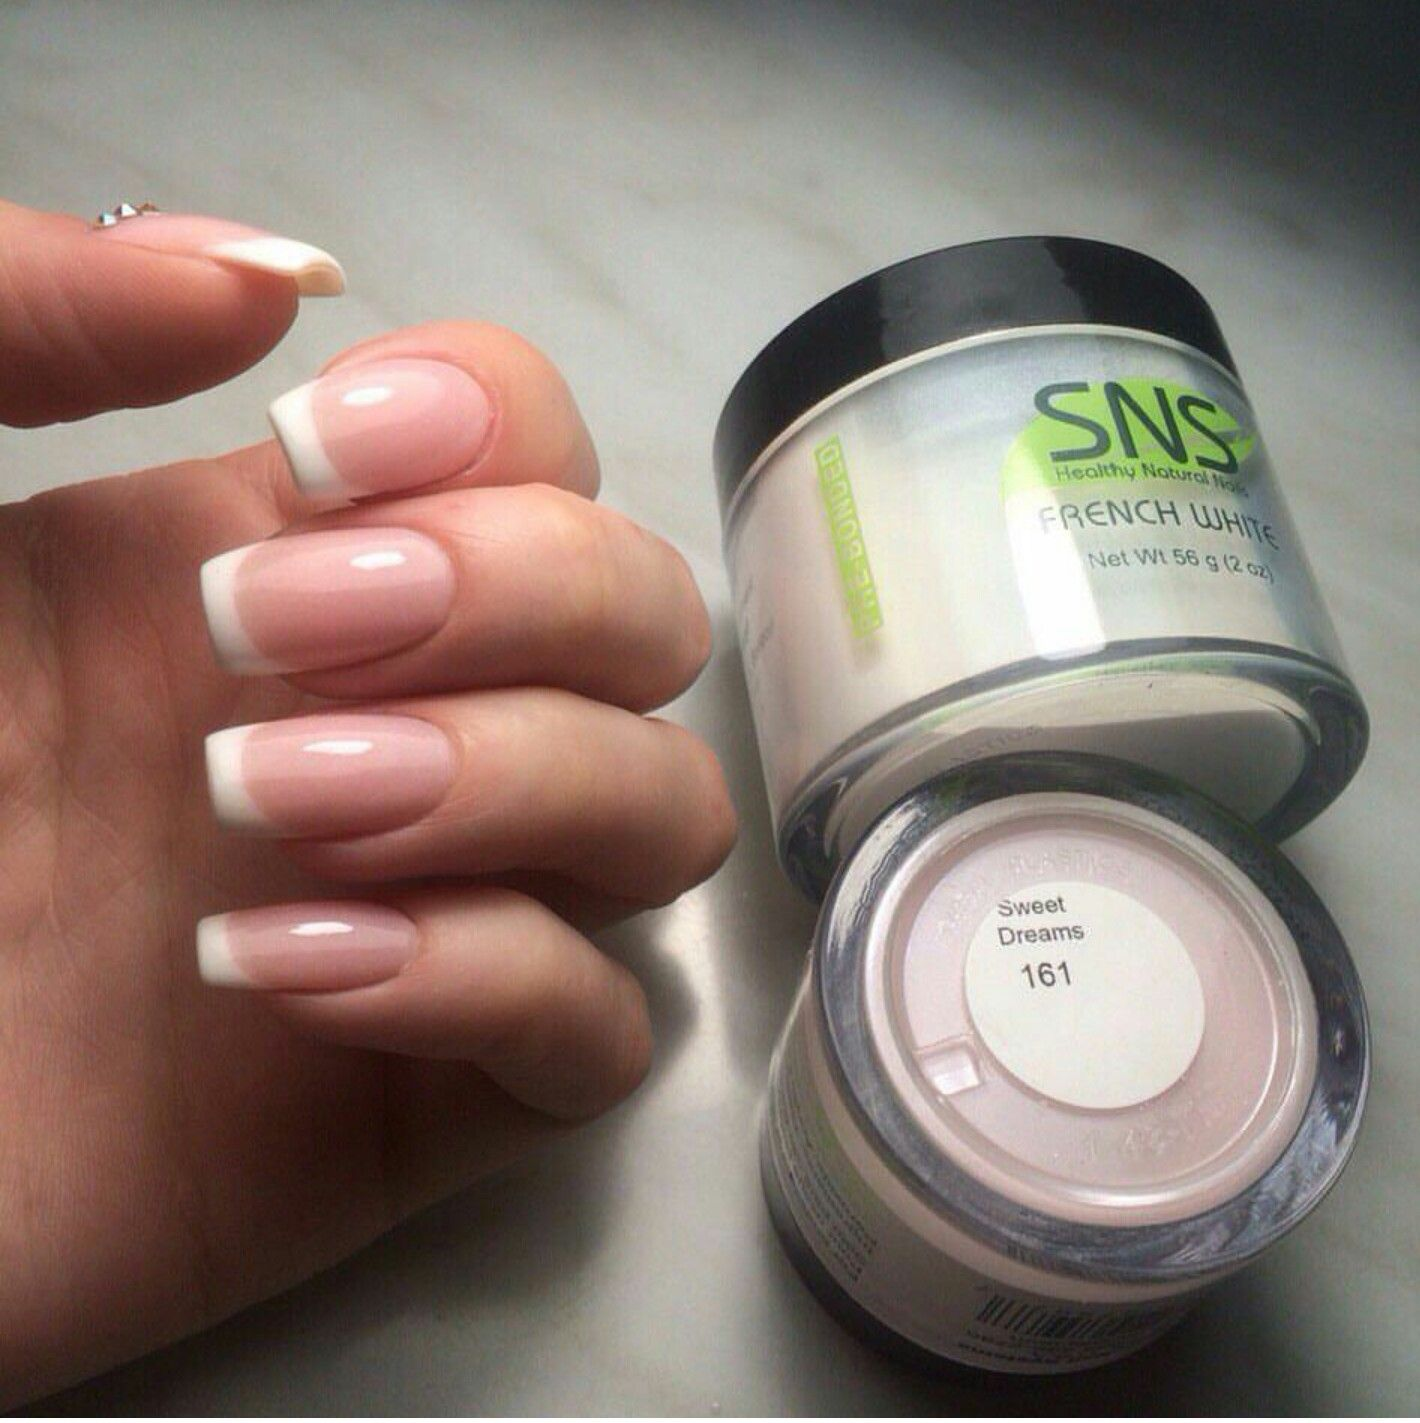 Dipping Powder Aka Healthy Nails On Top Of My Natural Nails Colors French White And Pink 1 It S Durable Doesn T C Healthy Nails Dipped Nails Natural Nails